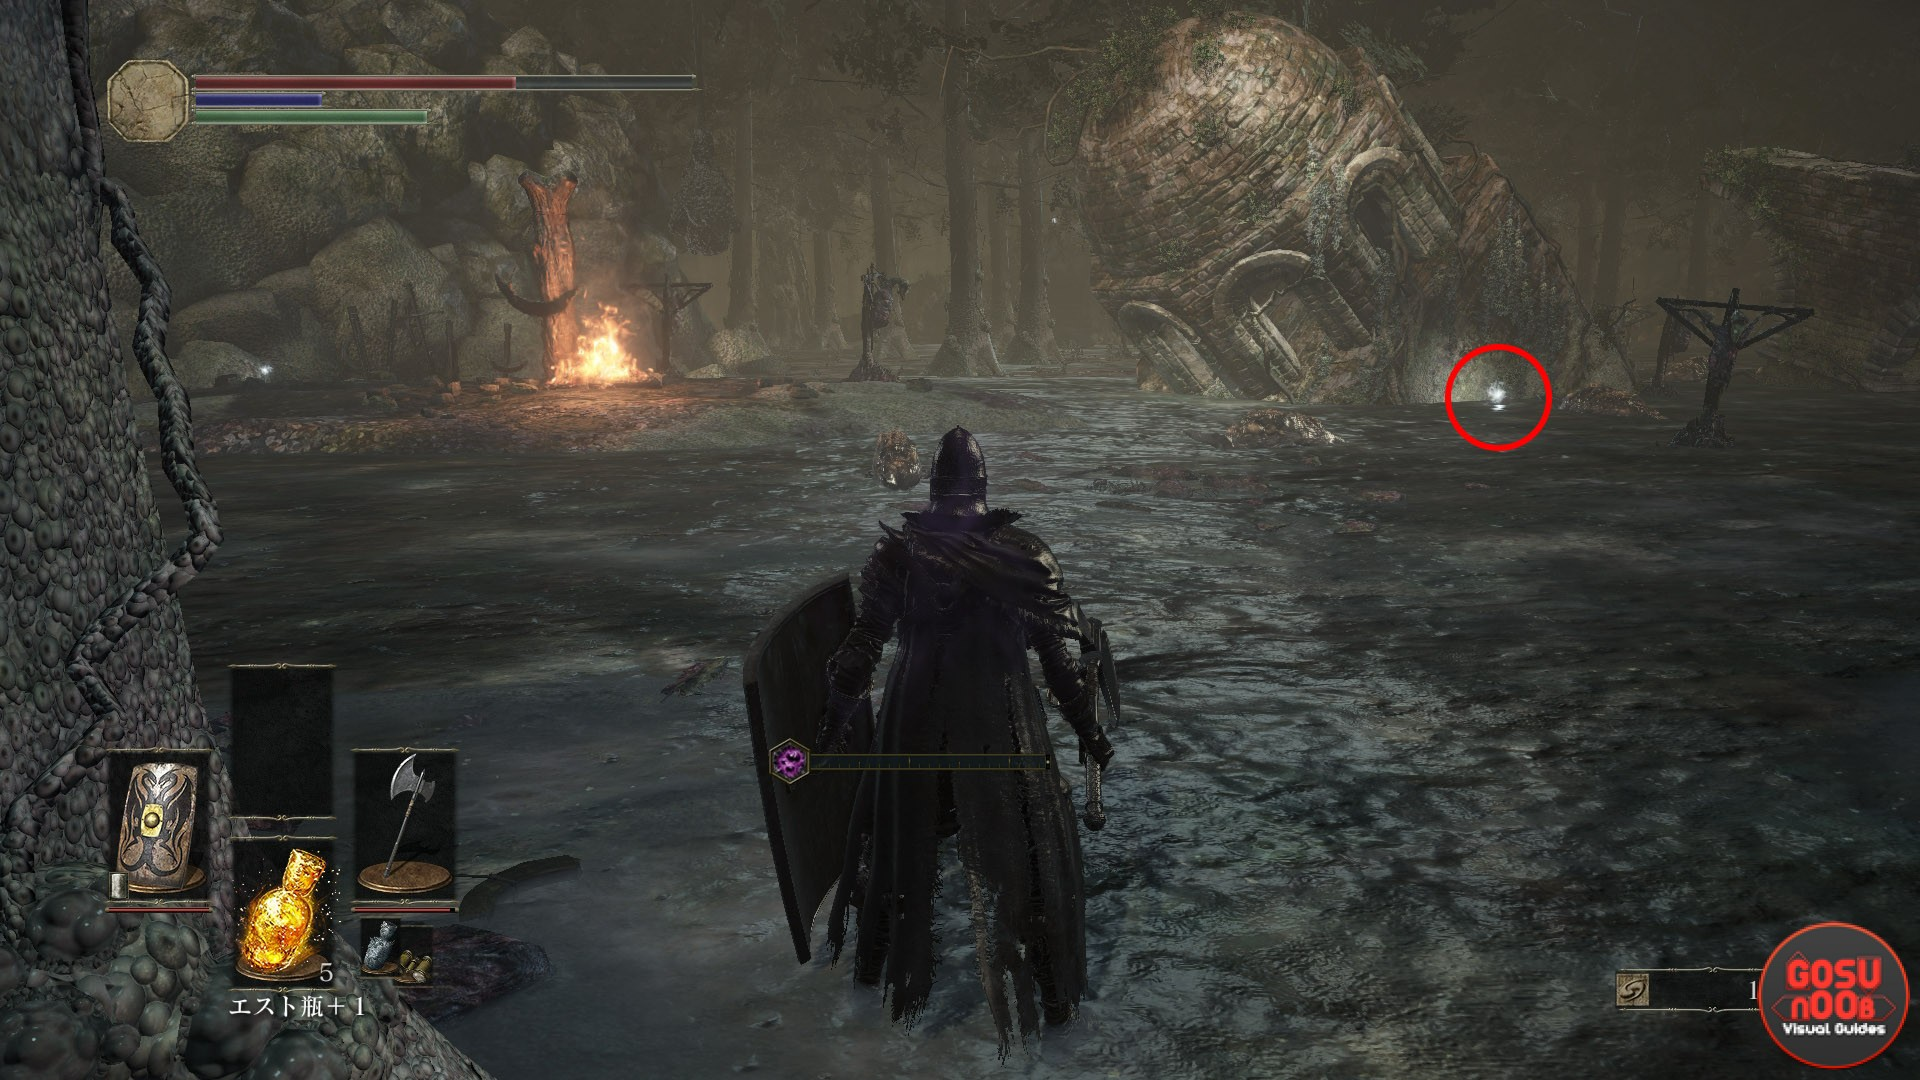 Location and use of fragments of estus in Dark Souls 3